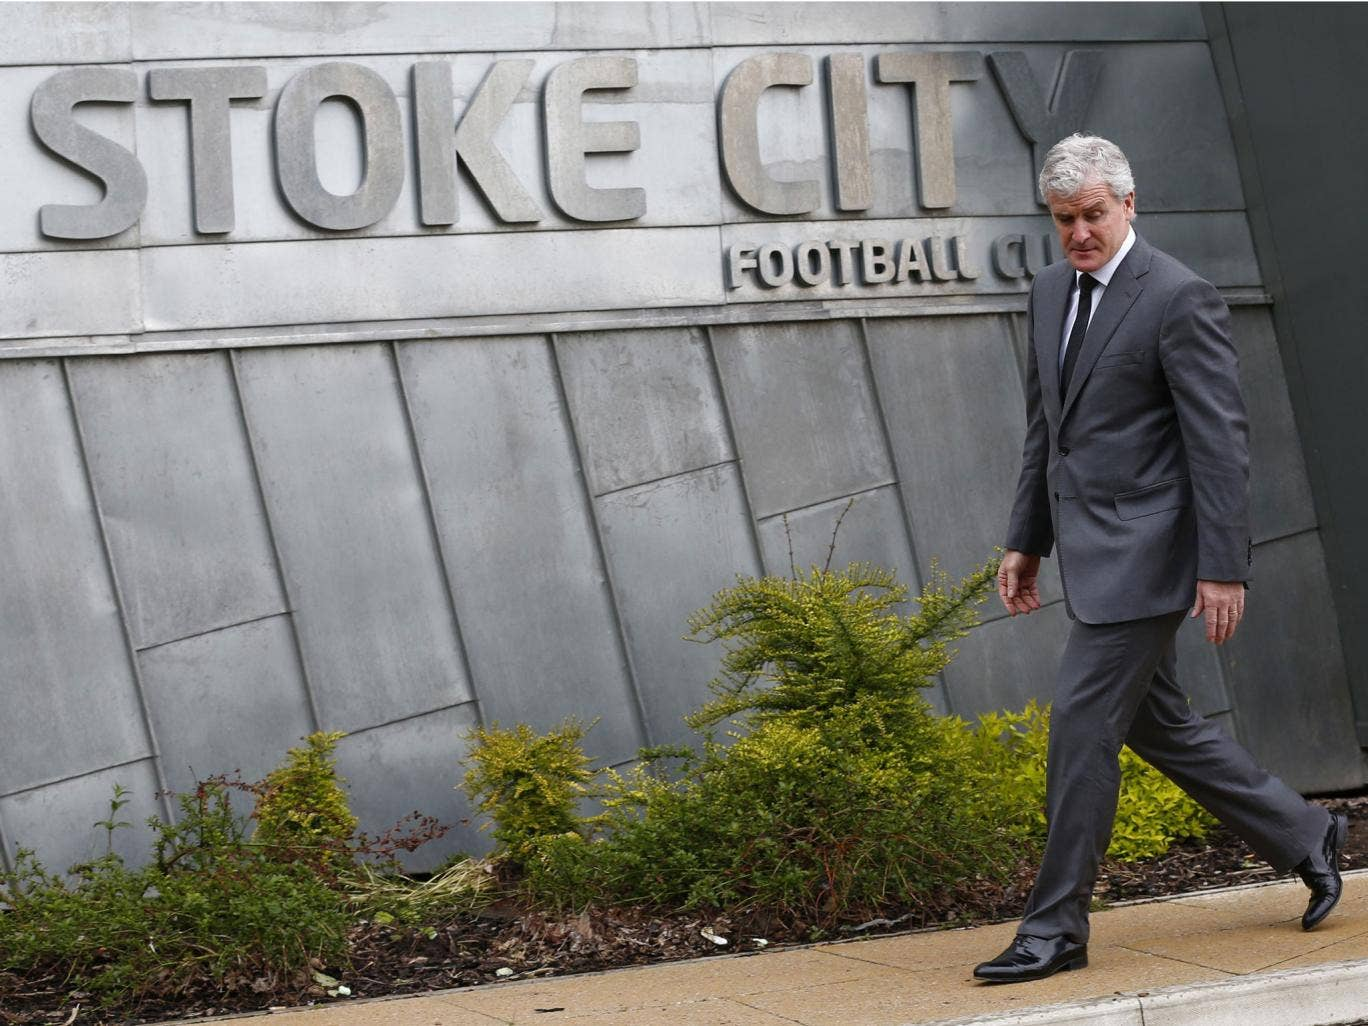 Mark Hughes arrives at Stoke to find a club already established by Tony Pulis